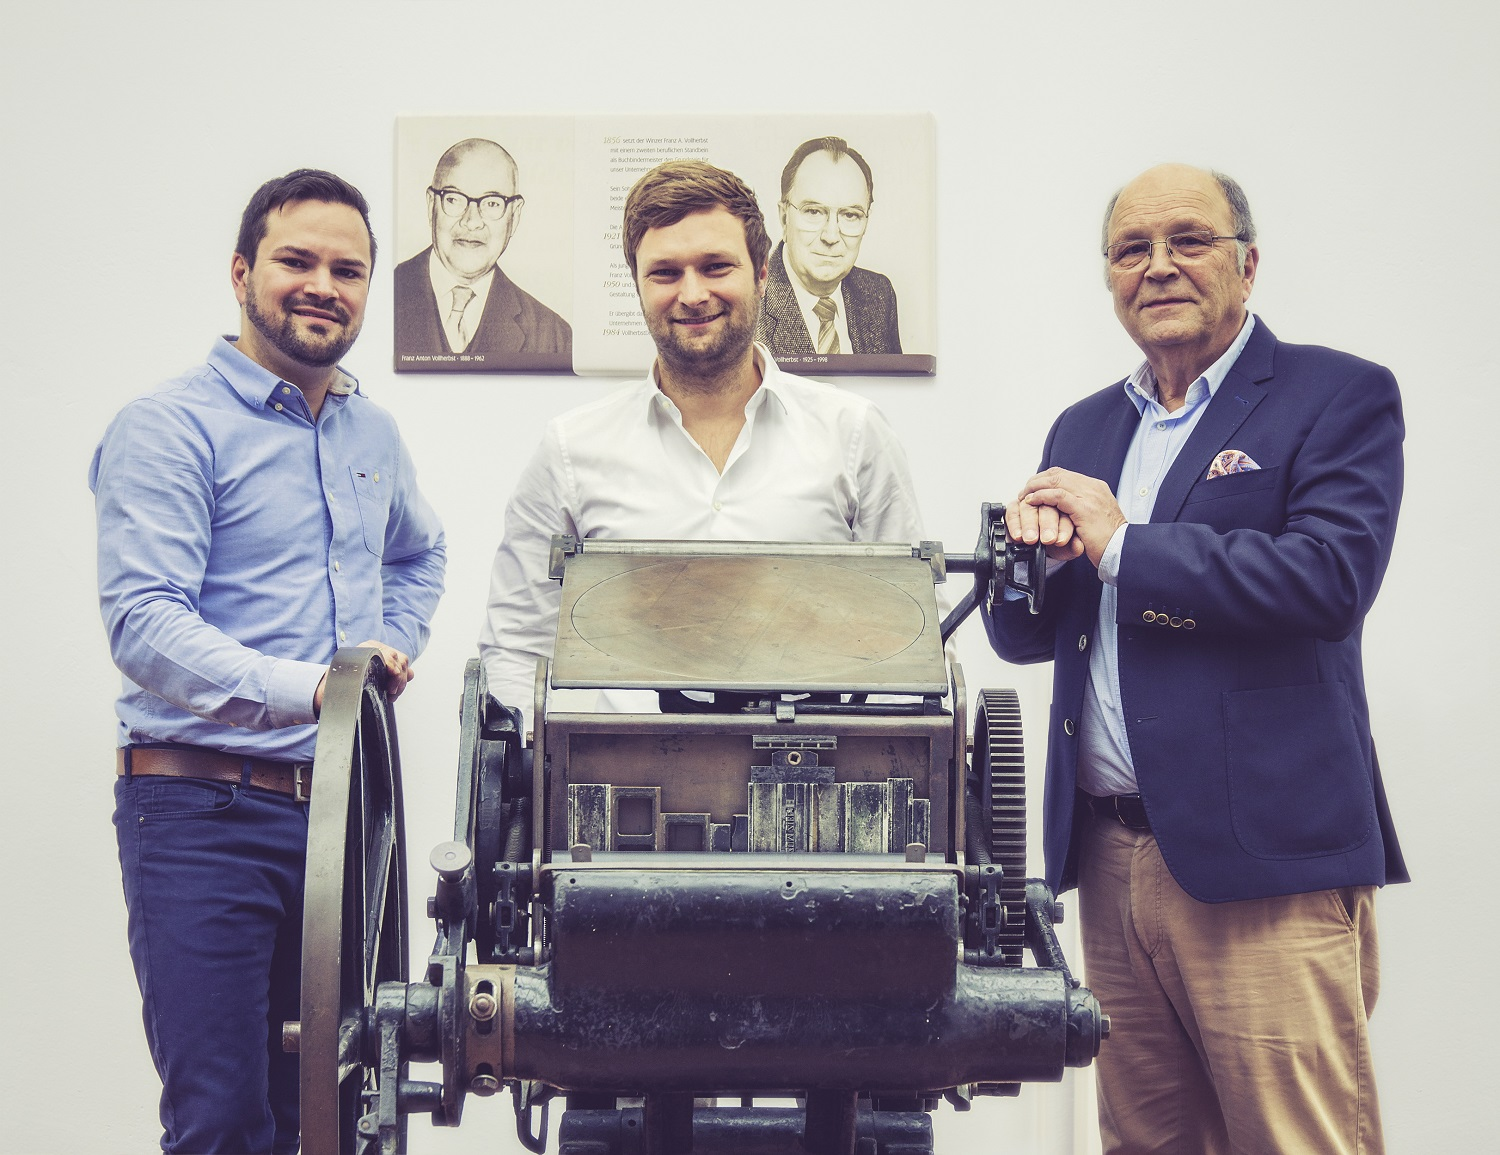 Fourth generation Vollherbst Labels focused on continuity and the future